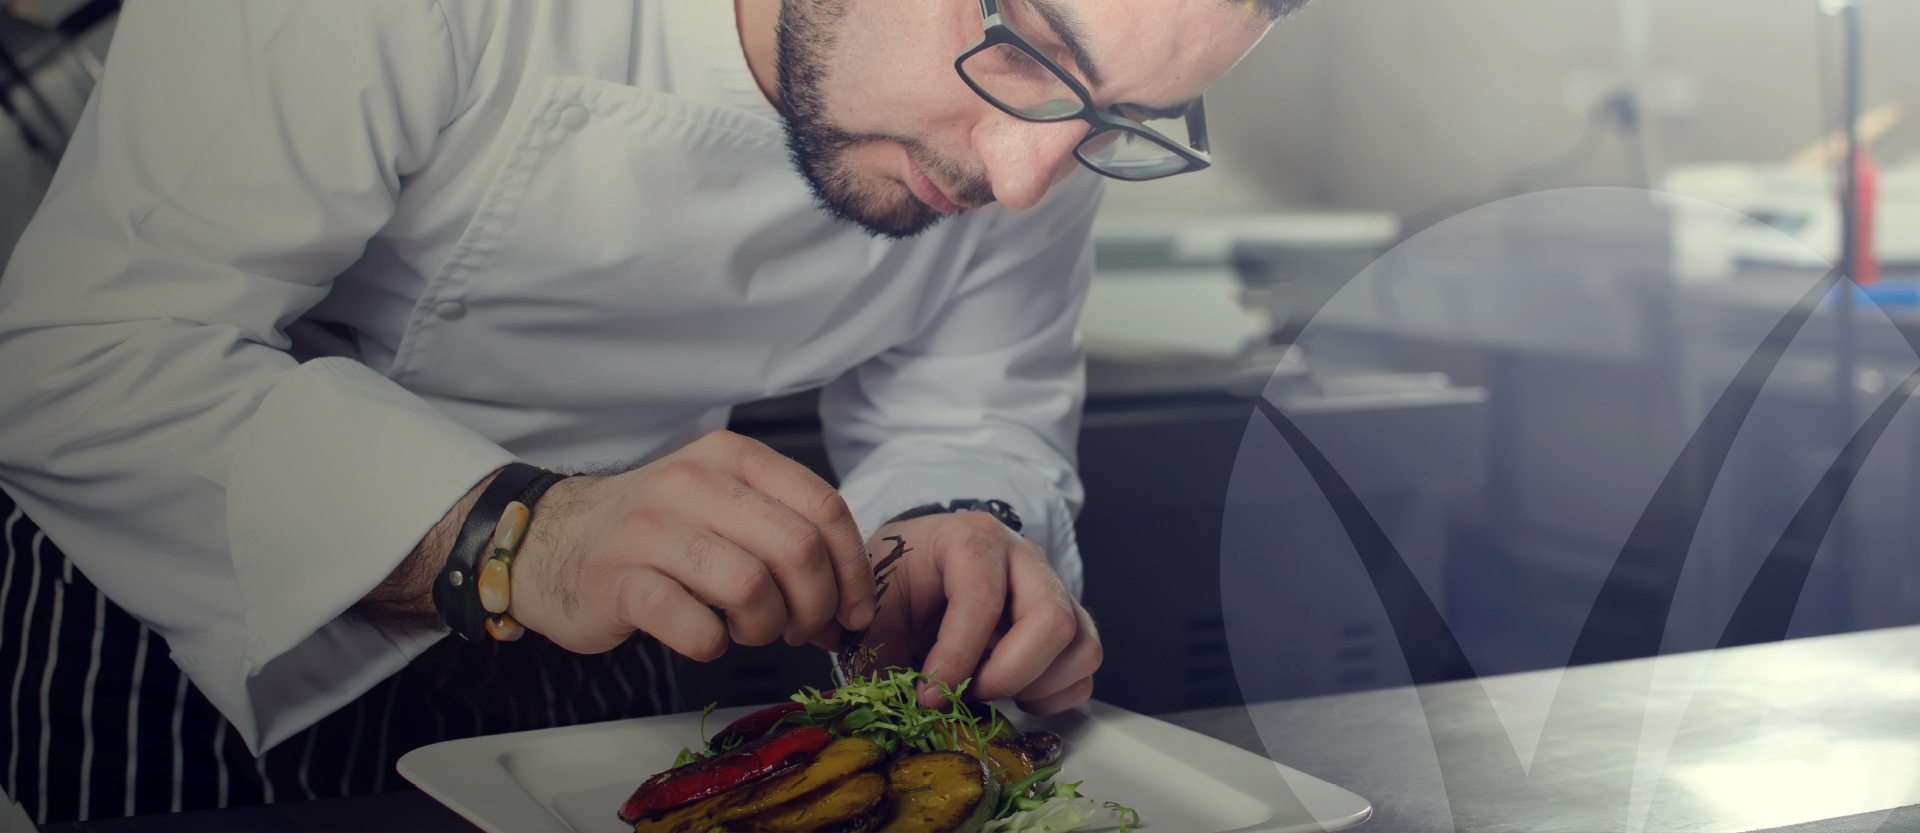 Chef wearing glasses plating a gourmet-style entree featuring fresh grilled vegetables in a professional kitchen setting. Better Homes and Gardens Real Estate